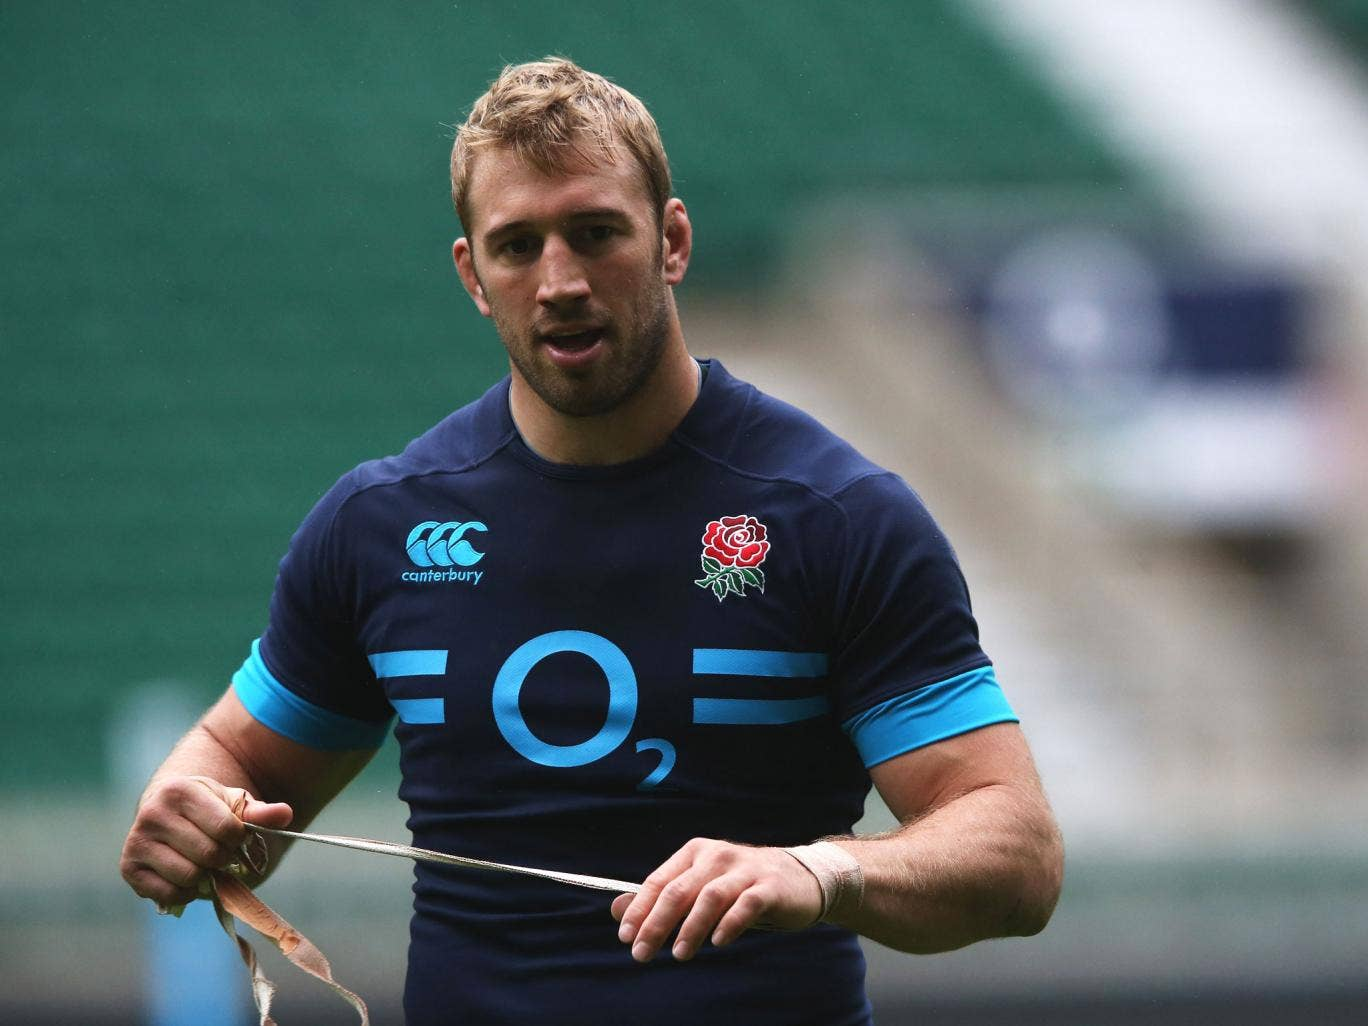 Chris Robshaw brings a welcome measure of consistency to the captain's role